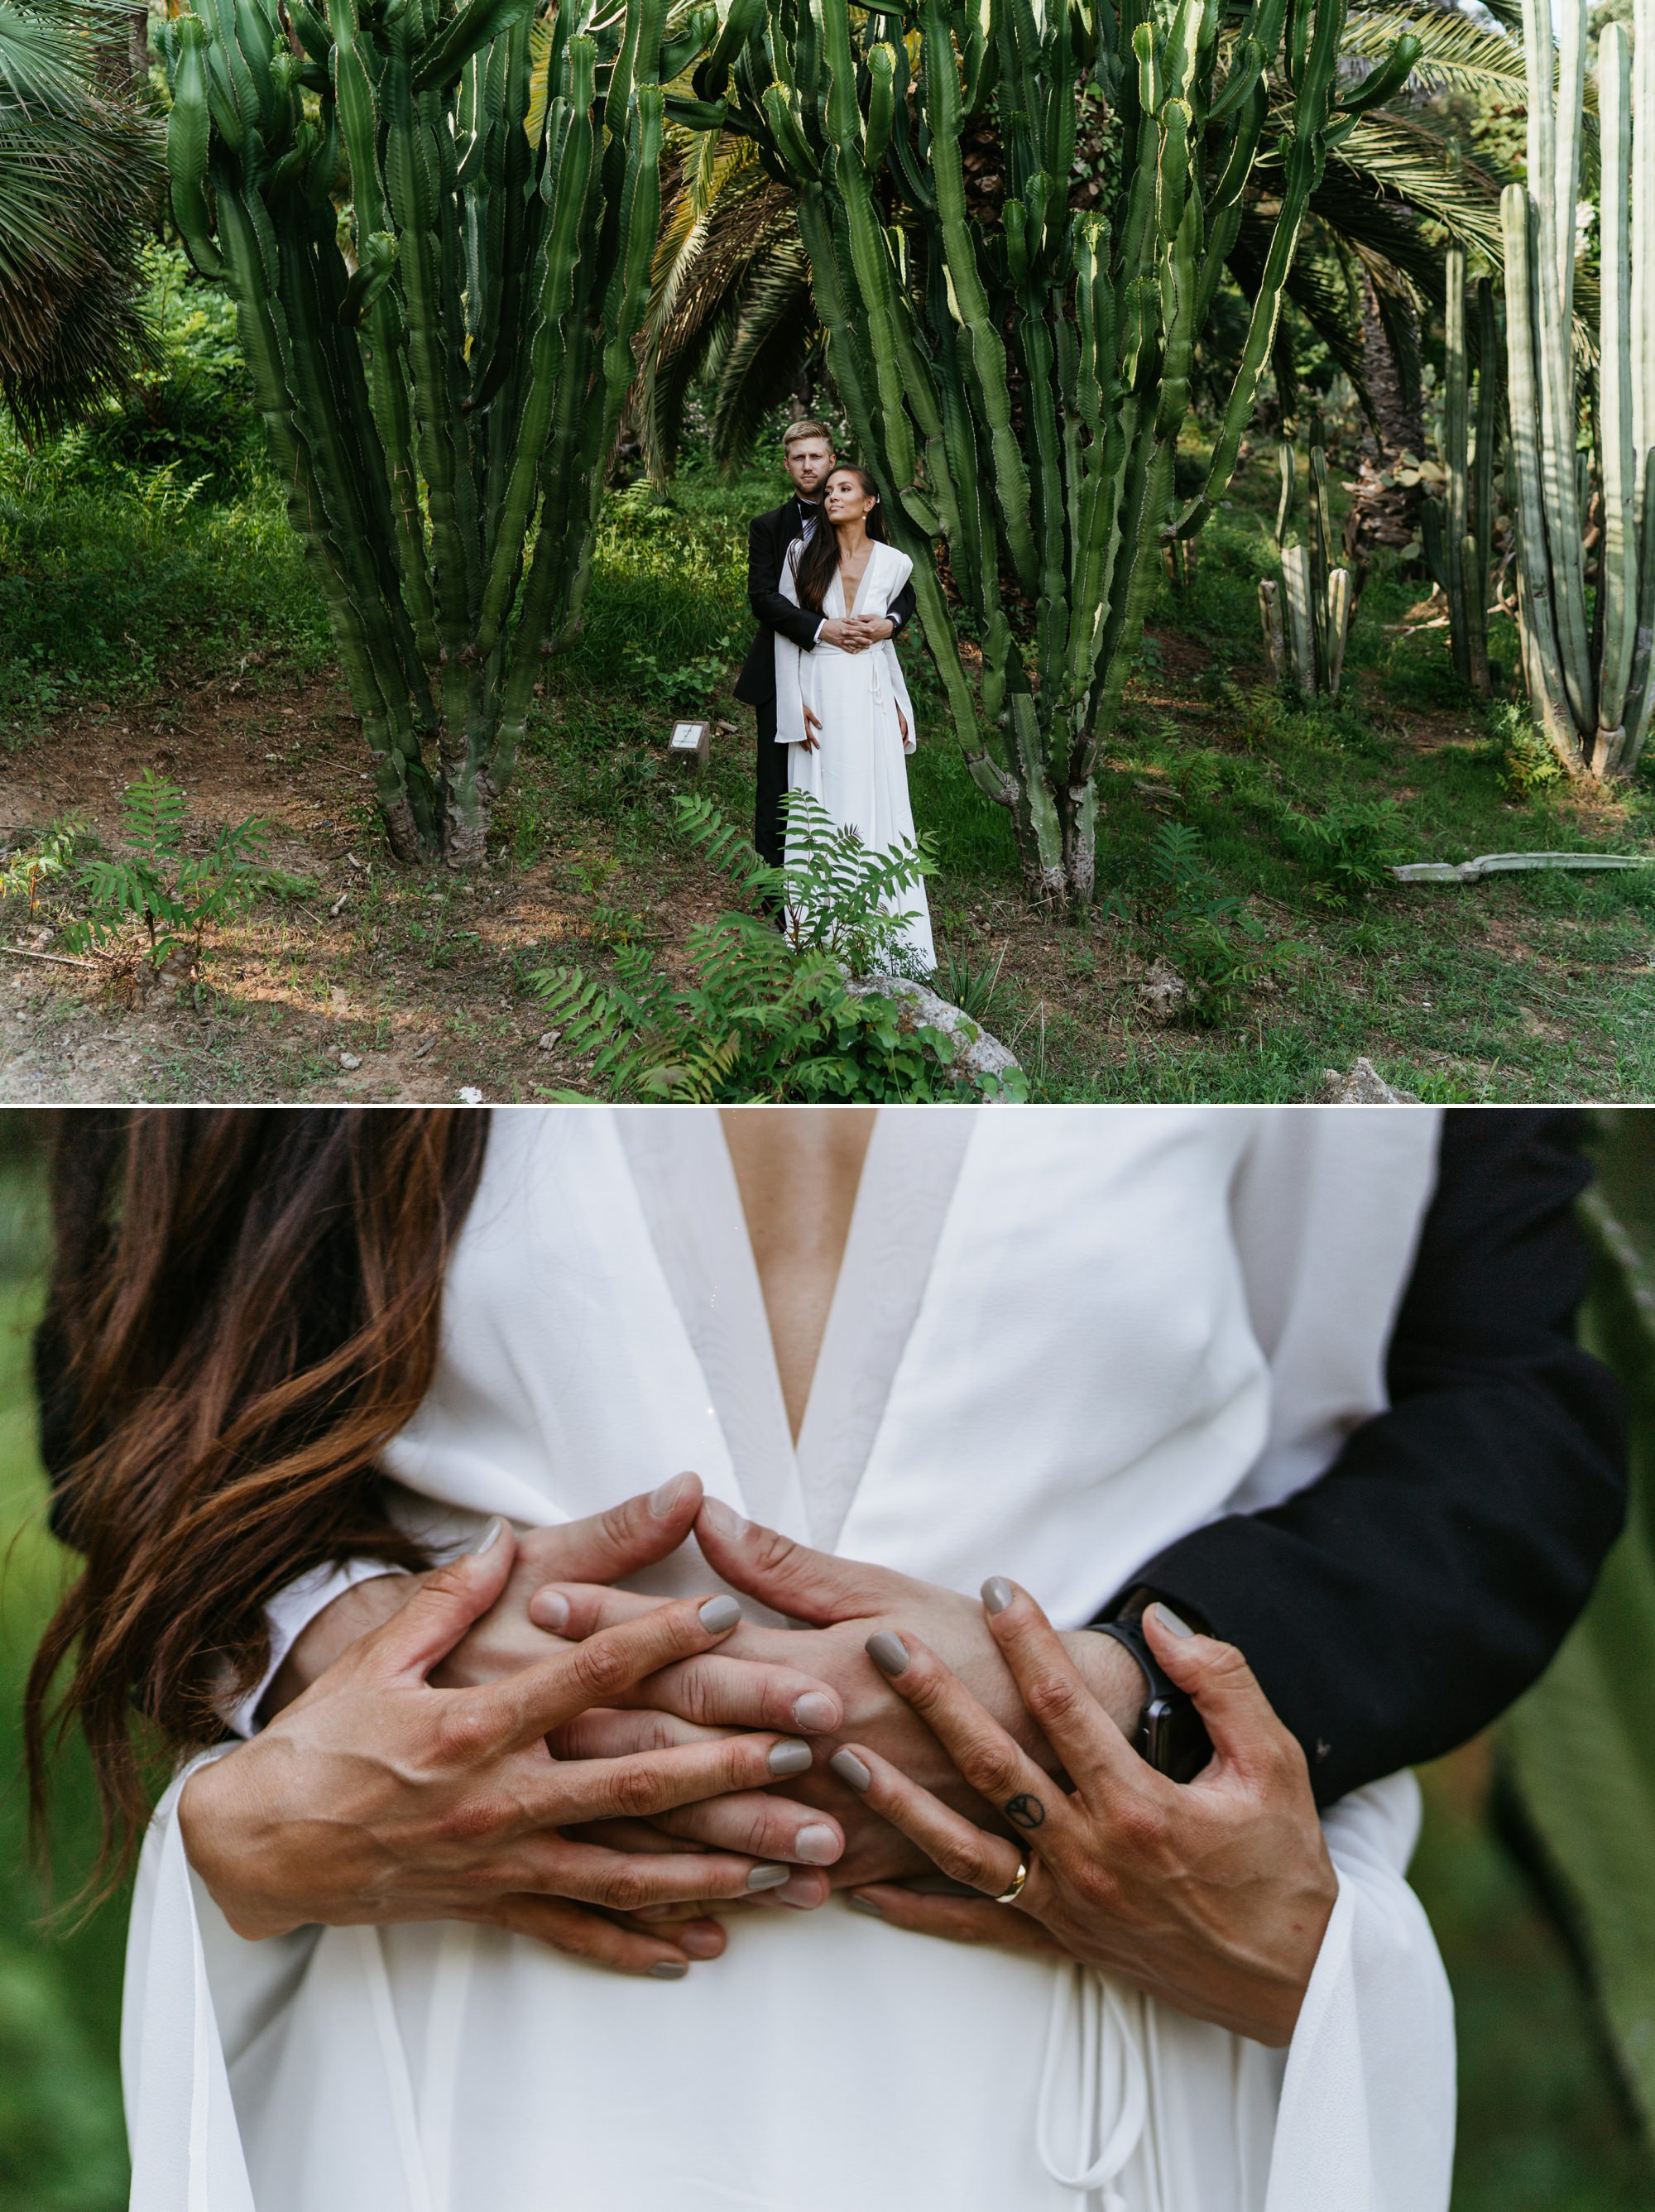 natural wedding photography private wedding barcelona 0173 1